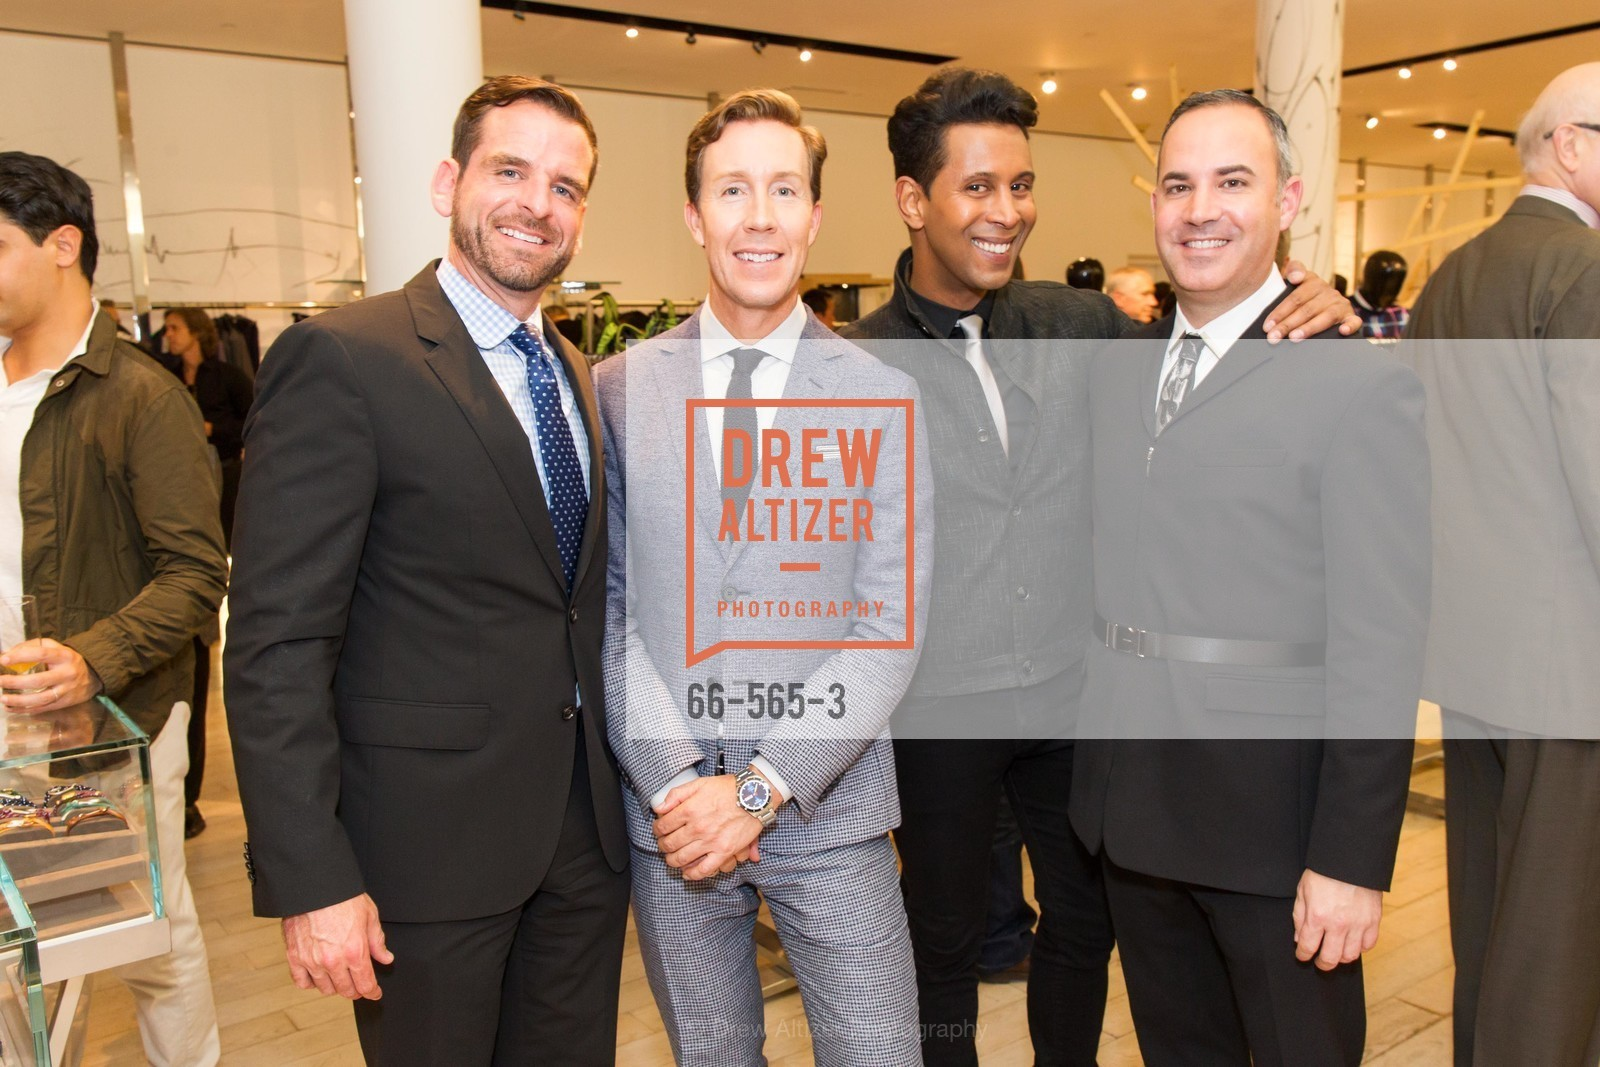 Ryan Williams, Eric Jennings, Emillio Mesa, Rober Arnold-Kraft, SAKS FIFTH AVENUE Hosts The GLAAD GALA Kick-Off Party, US, September 12th, 2014,Drew Altizer, Drew Altizer Photography, full-service agency, private events, San Francisco photographer, photographer california